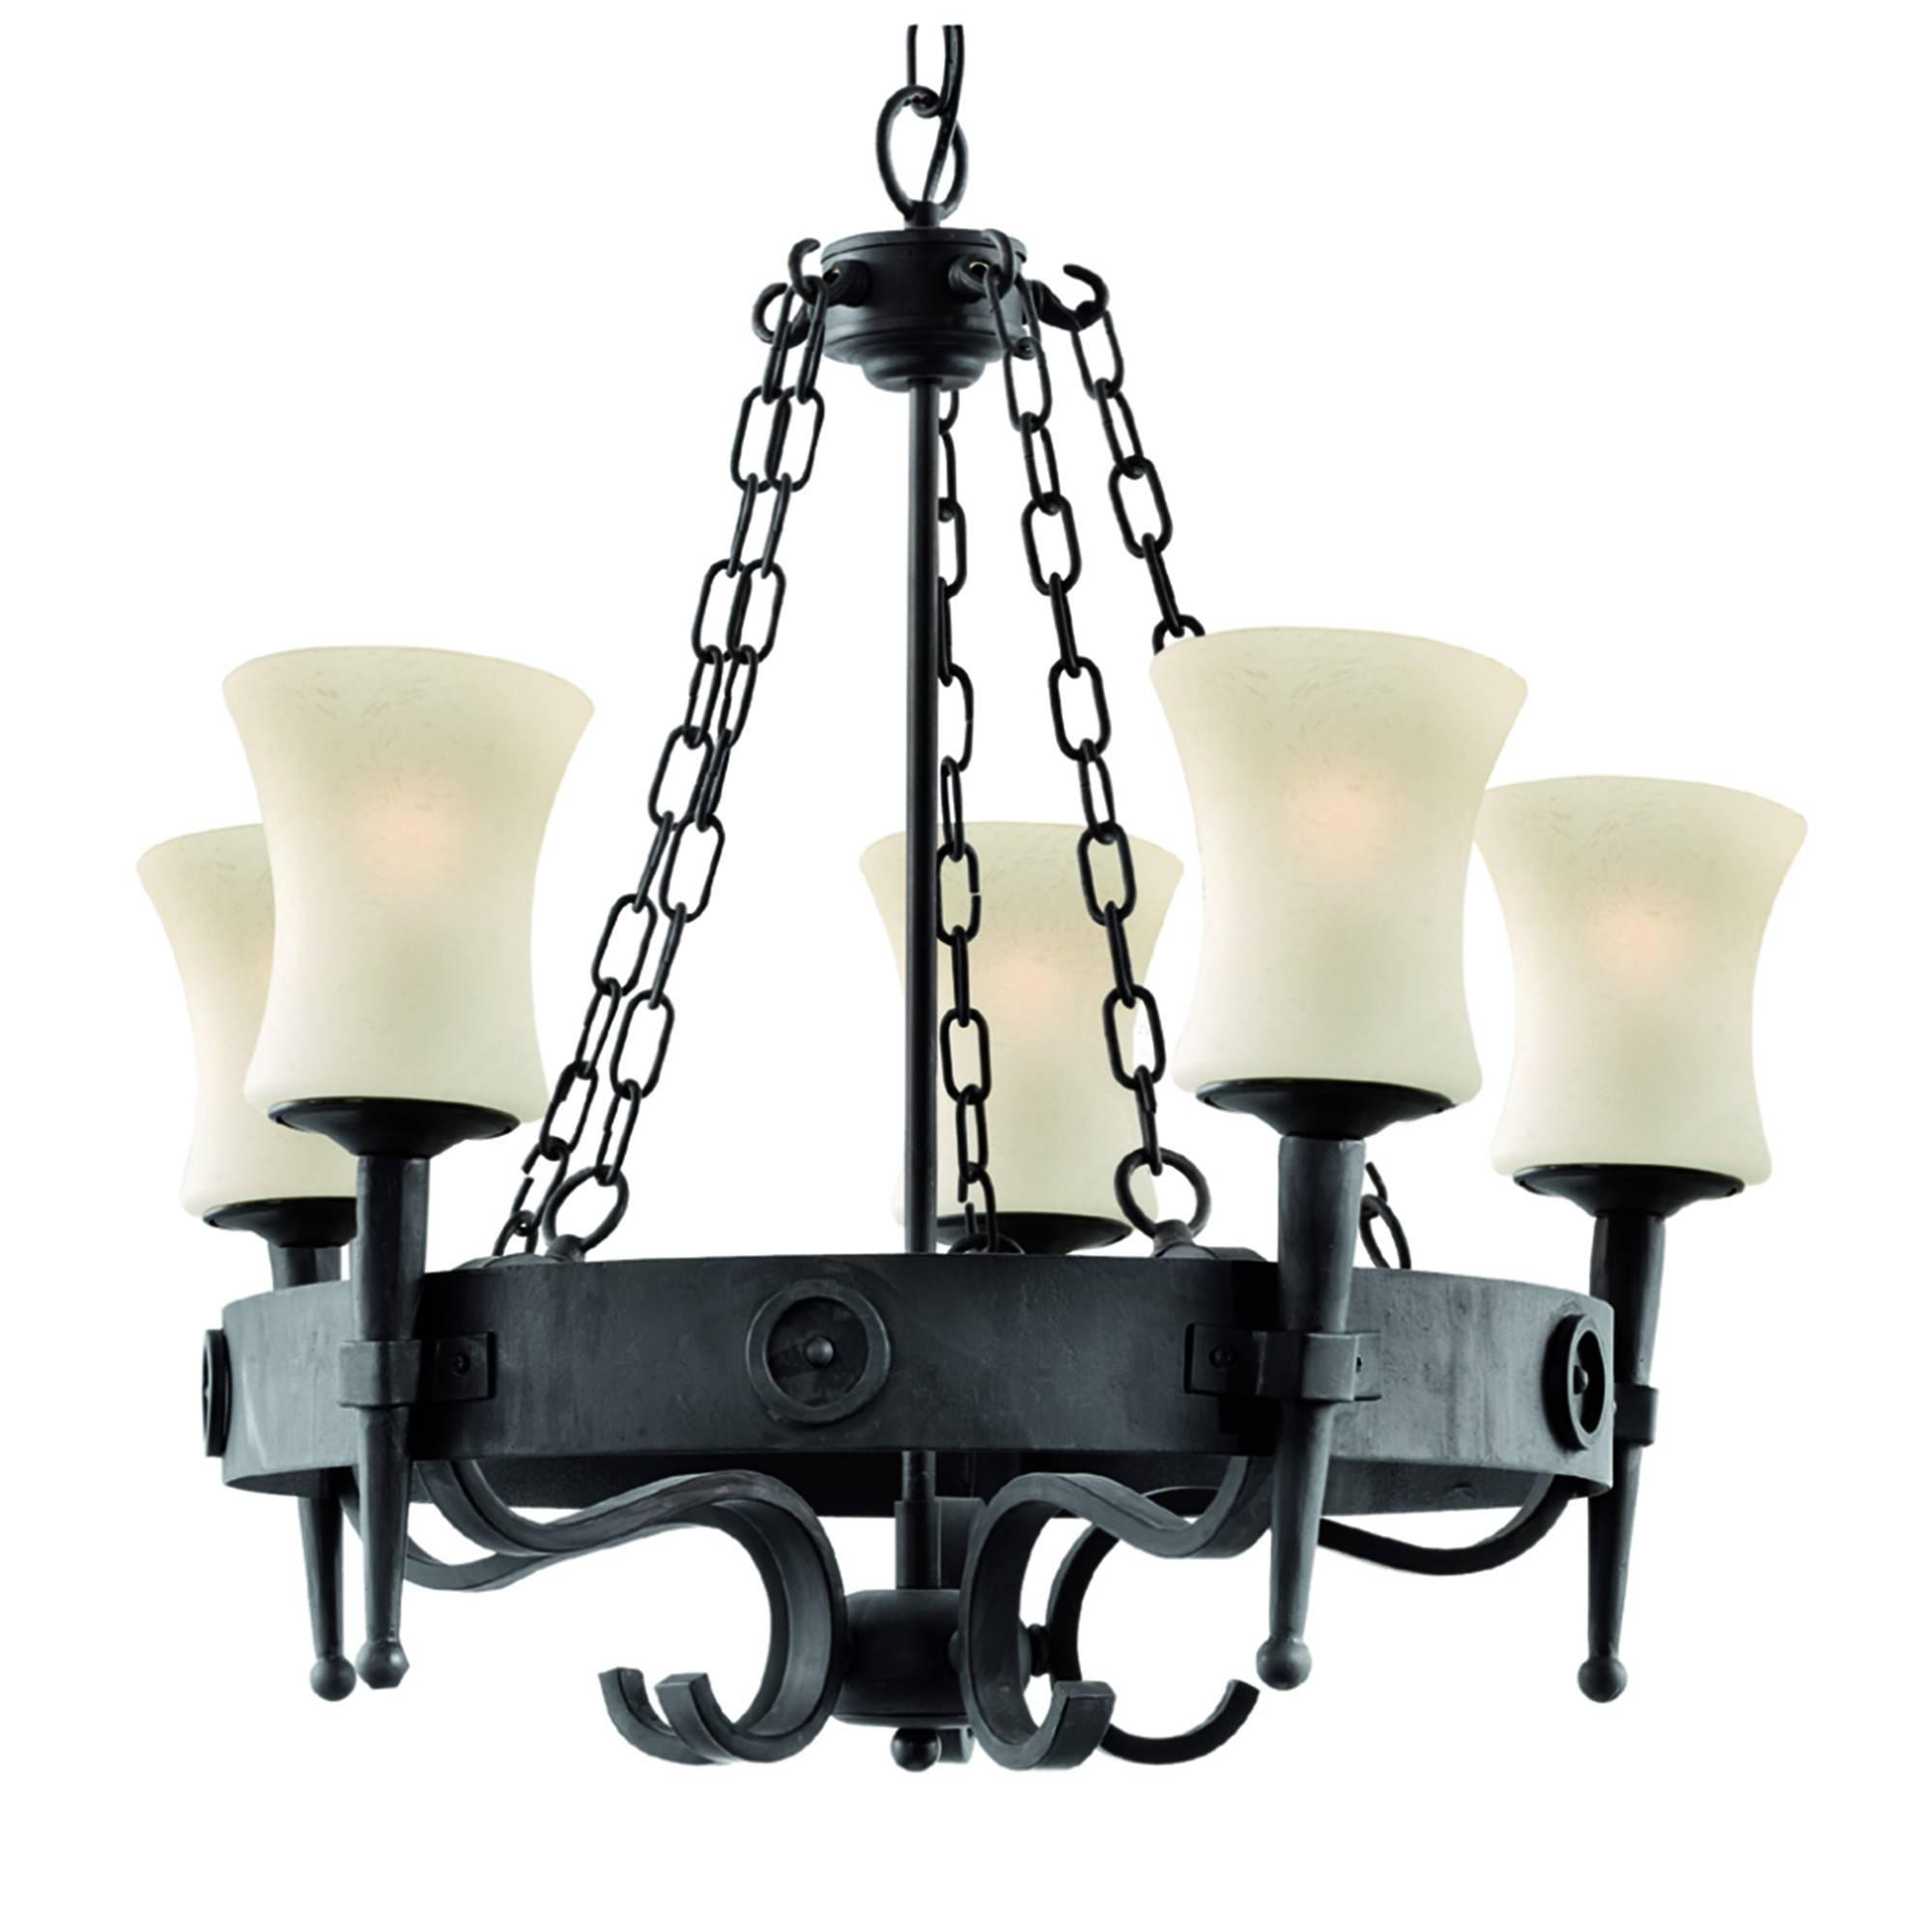 5 Light Fitting In Black/brown Wrought Iron & Scavo Glass Shades pertaining to Wrought Iron Lights Fittings (Image 5 of 15)